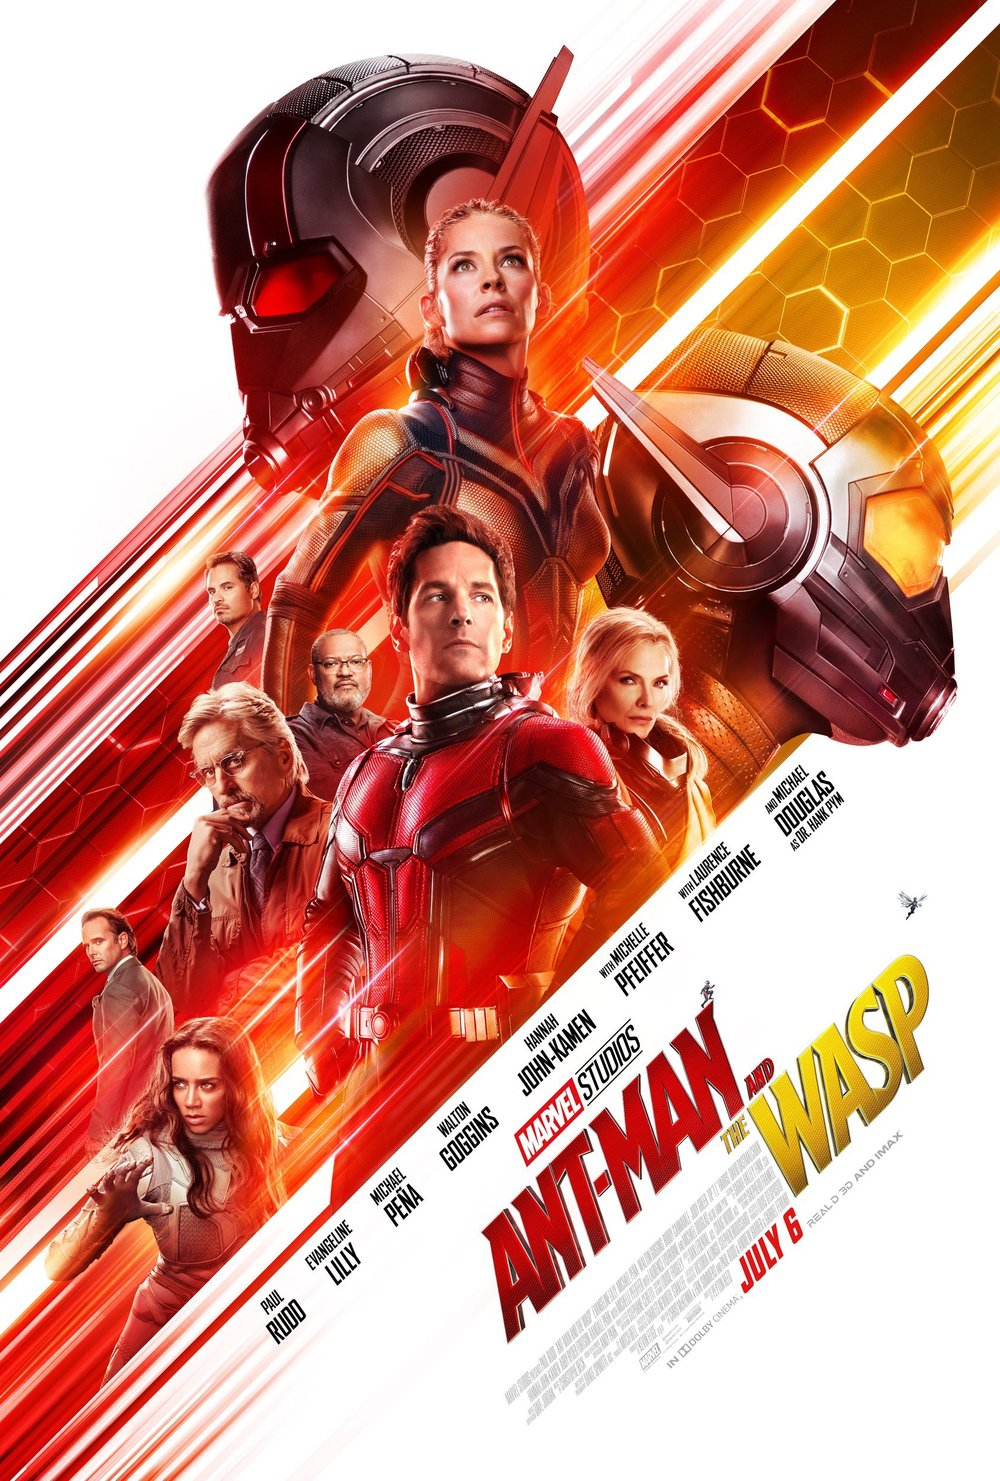 Movie poster for Ant-Man and the Wasp, featuring all the major characters in the film: Ant-Man, The Wasp, Dr. Pym, Ghost, and Janet van Dyne